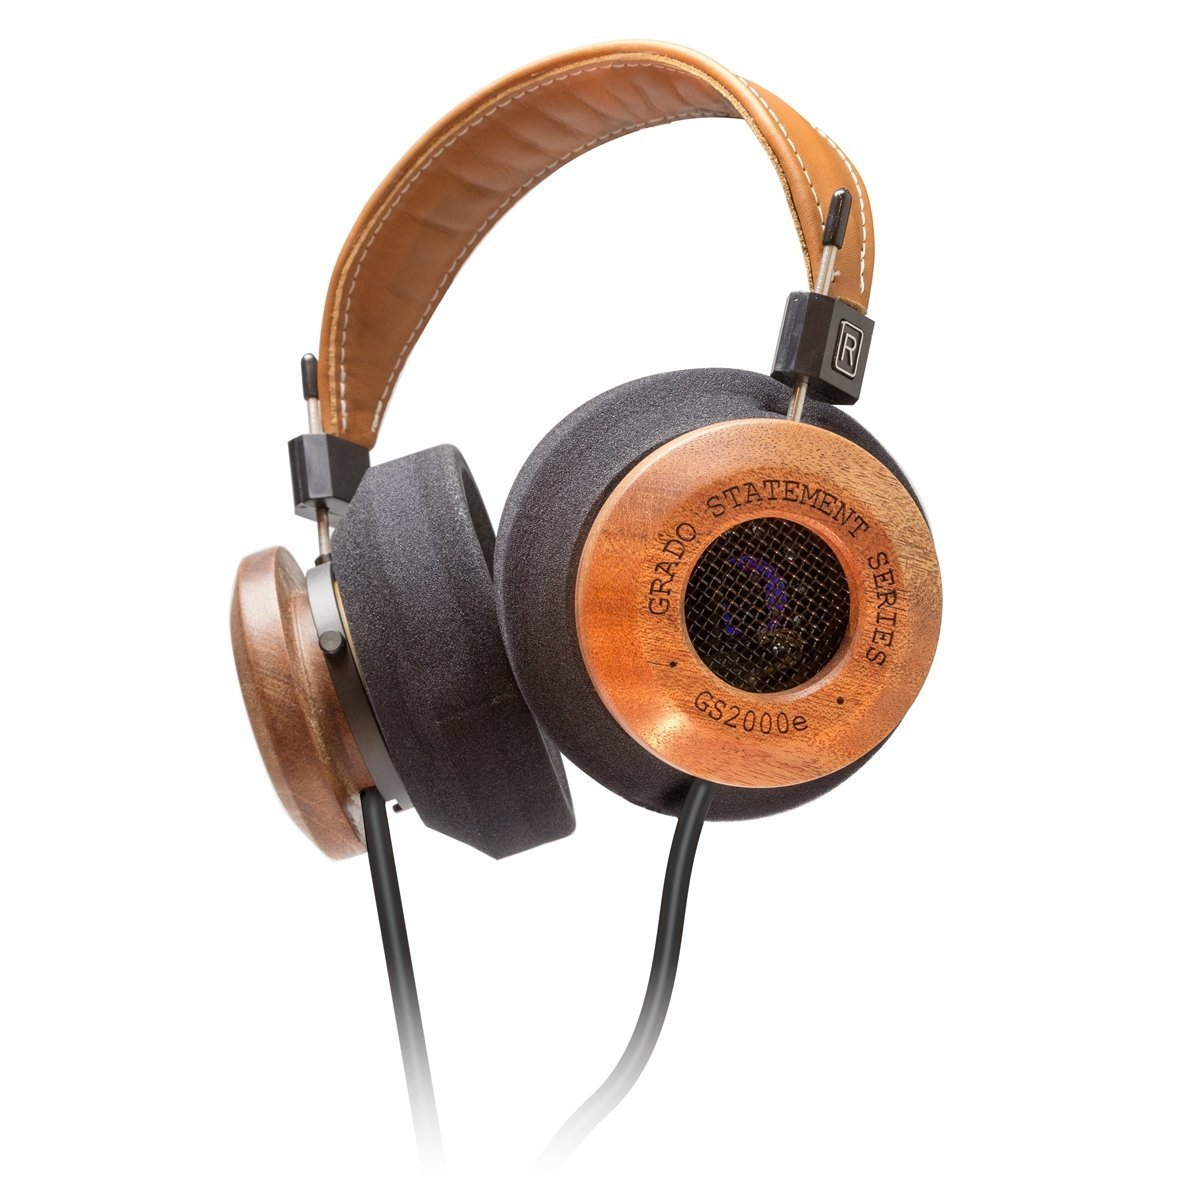 Statement Series GS2000e Wood Headphones